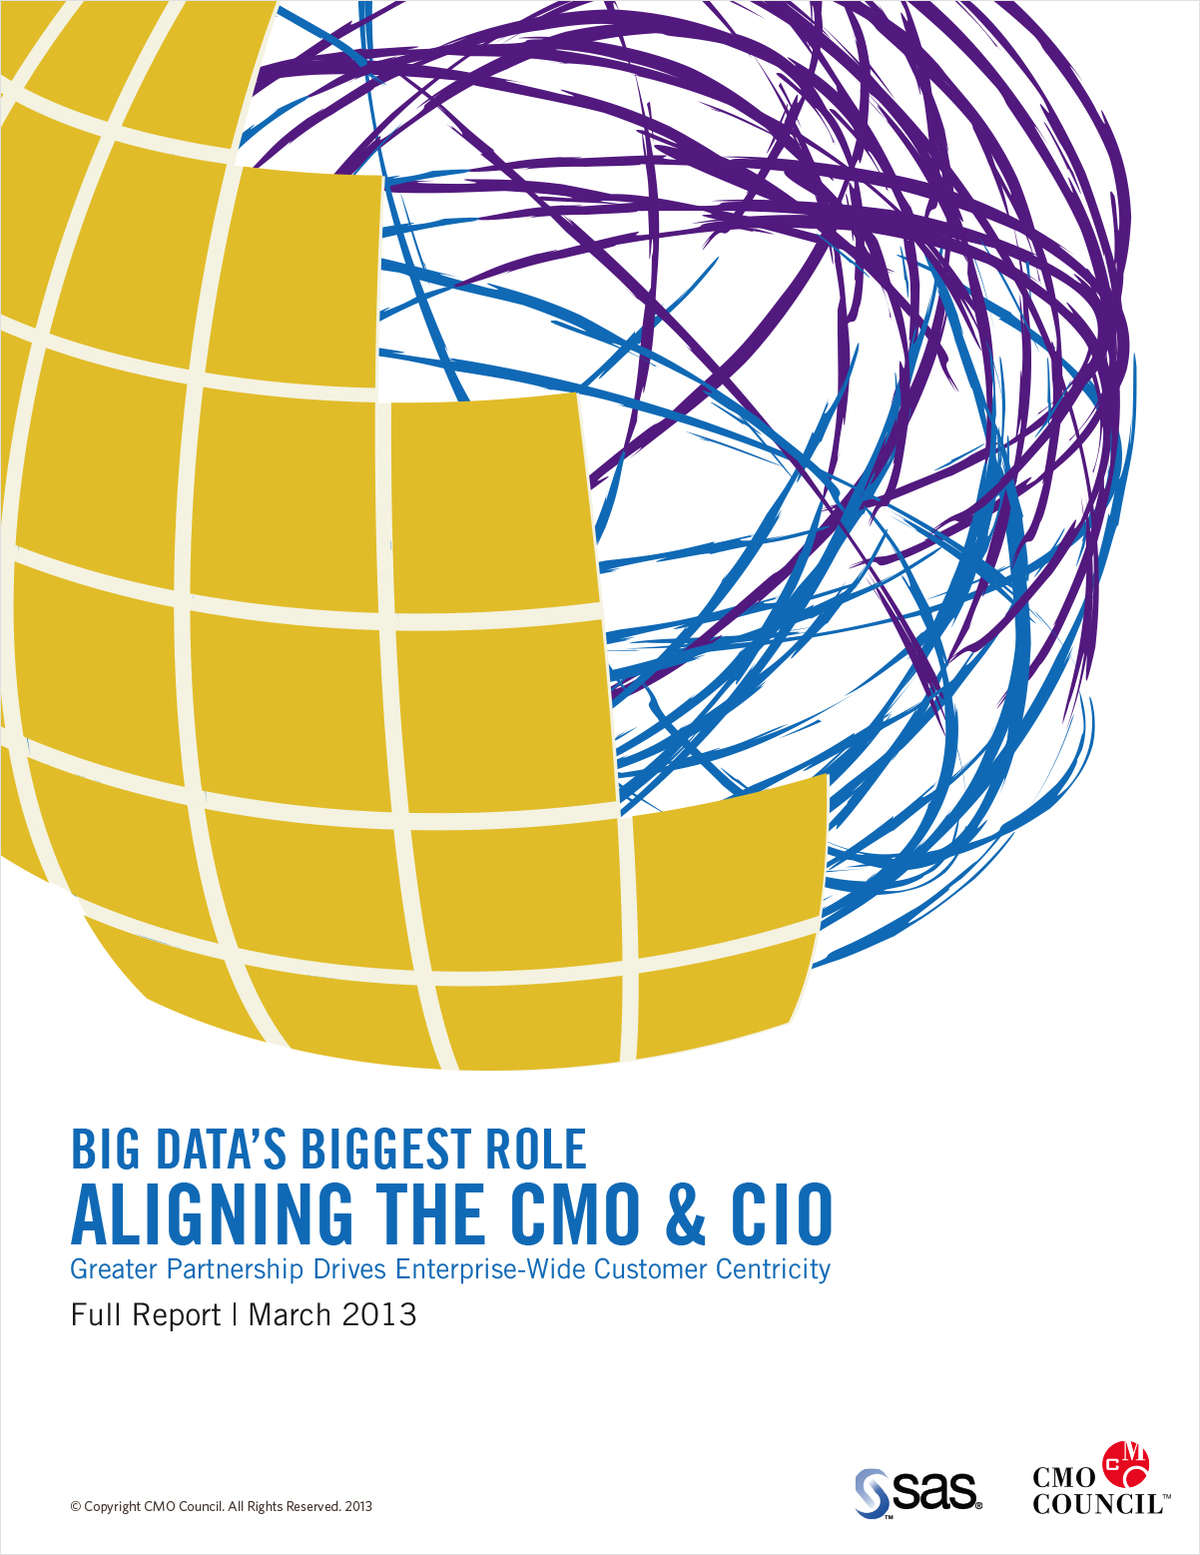 Big Data's Biggest Role: Aligning the CMO & CIO